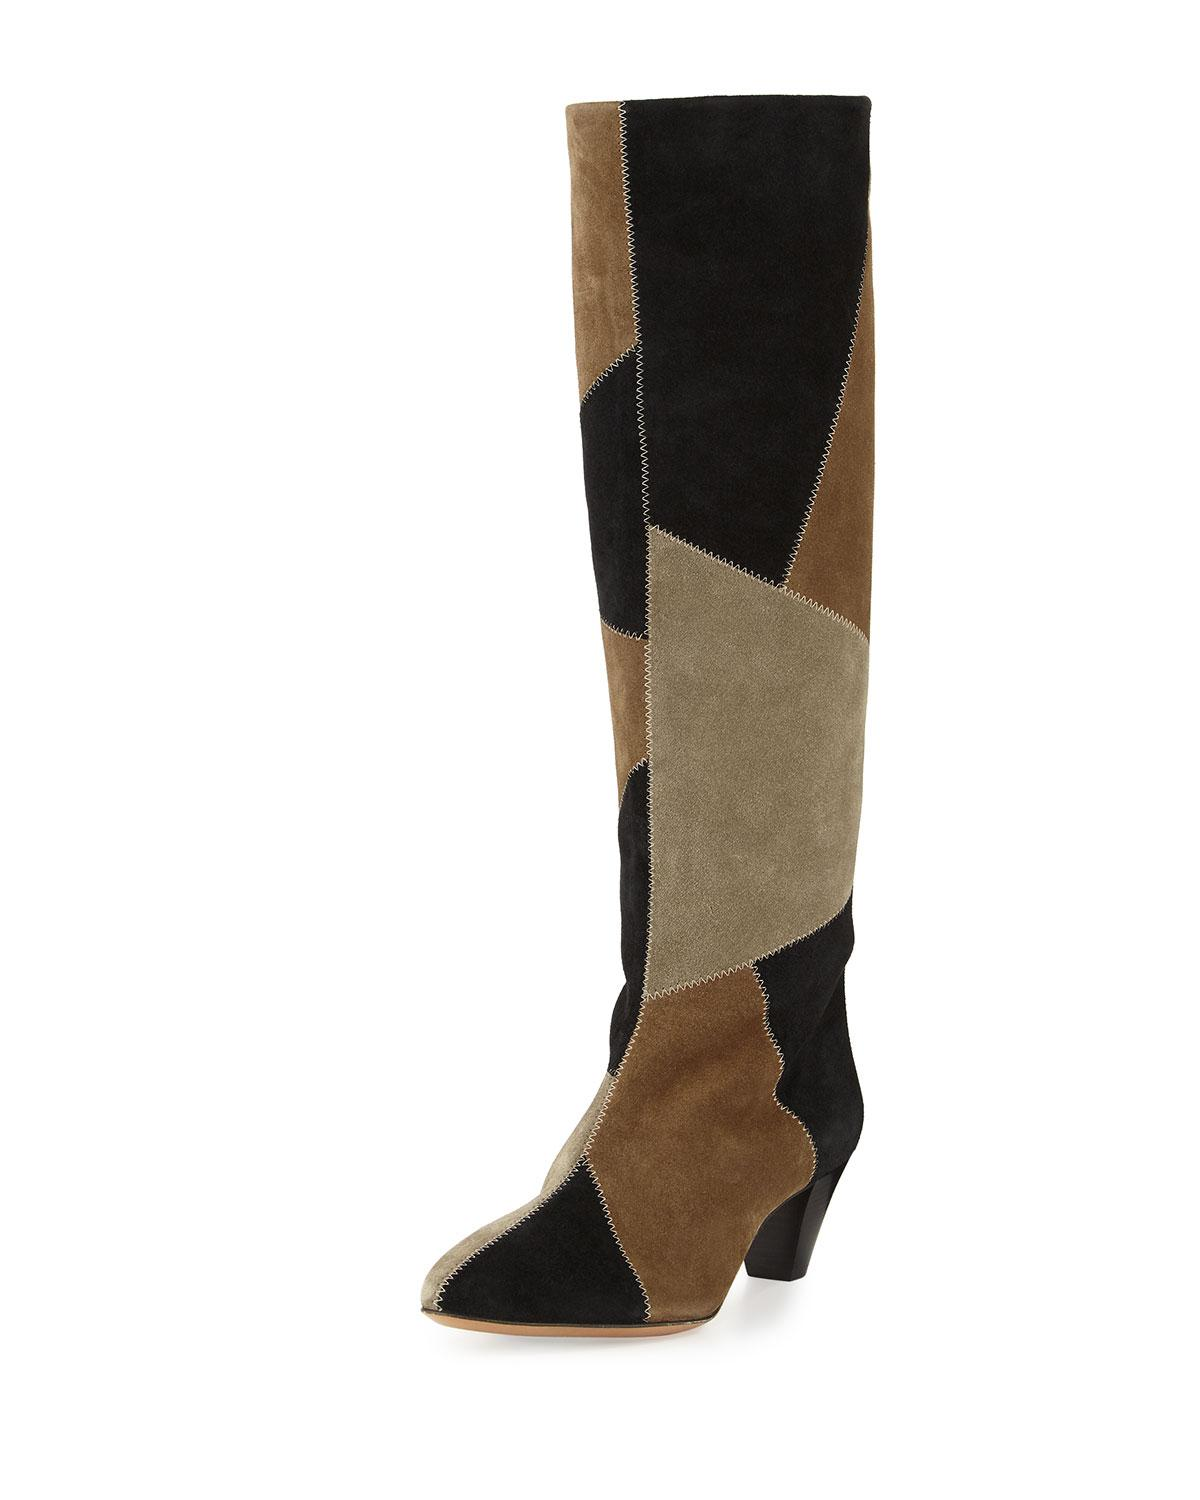 Lokyo Glossed-leather Knee-high Boots - Black Isabel Marant 191DYTY9S